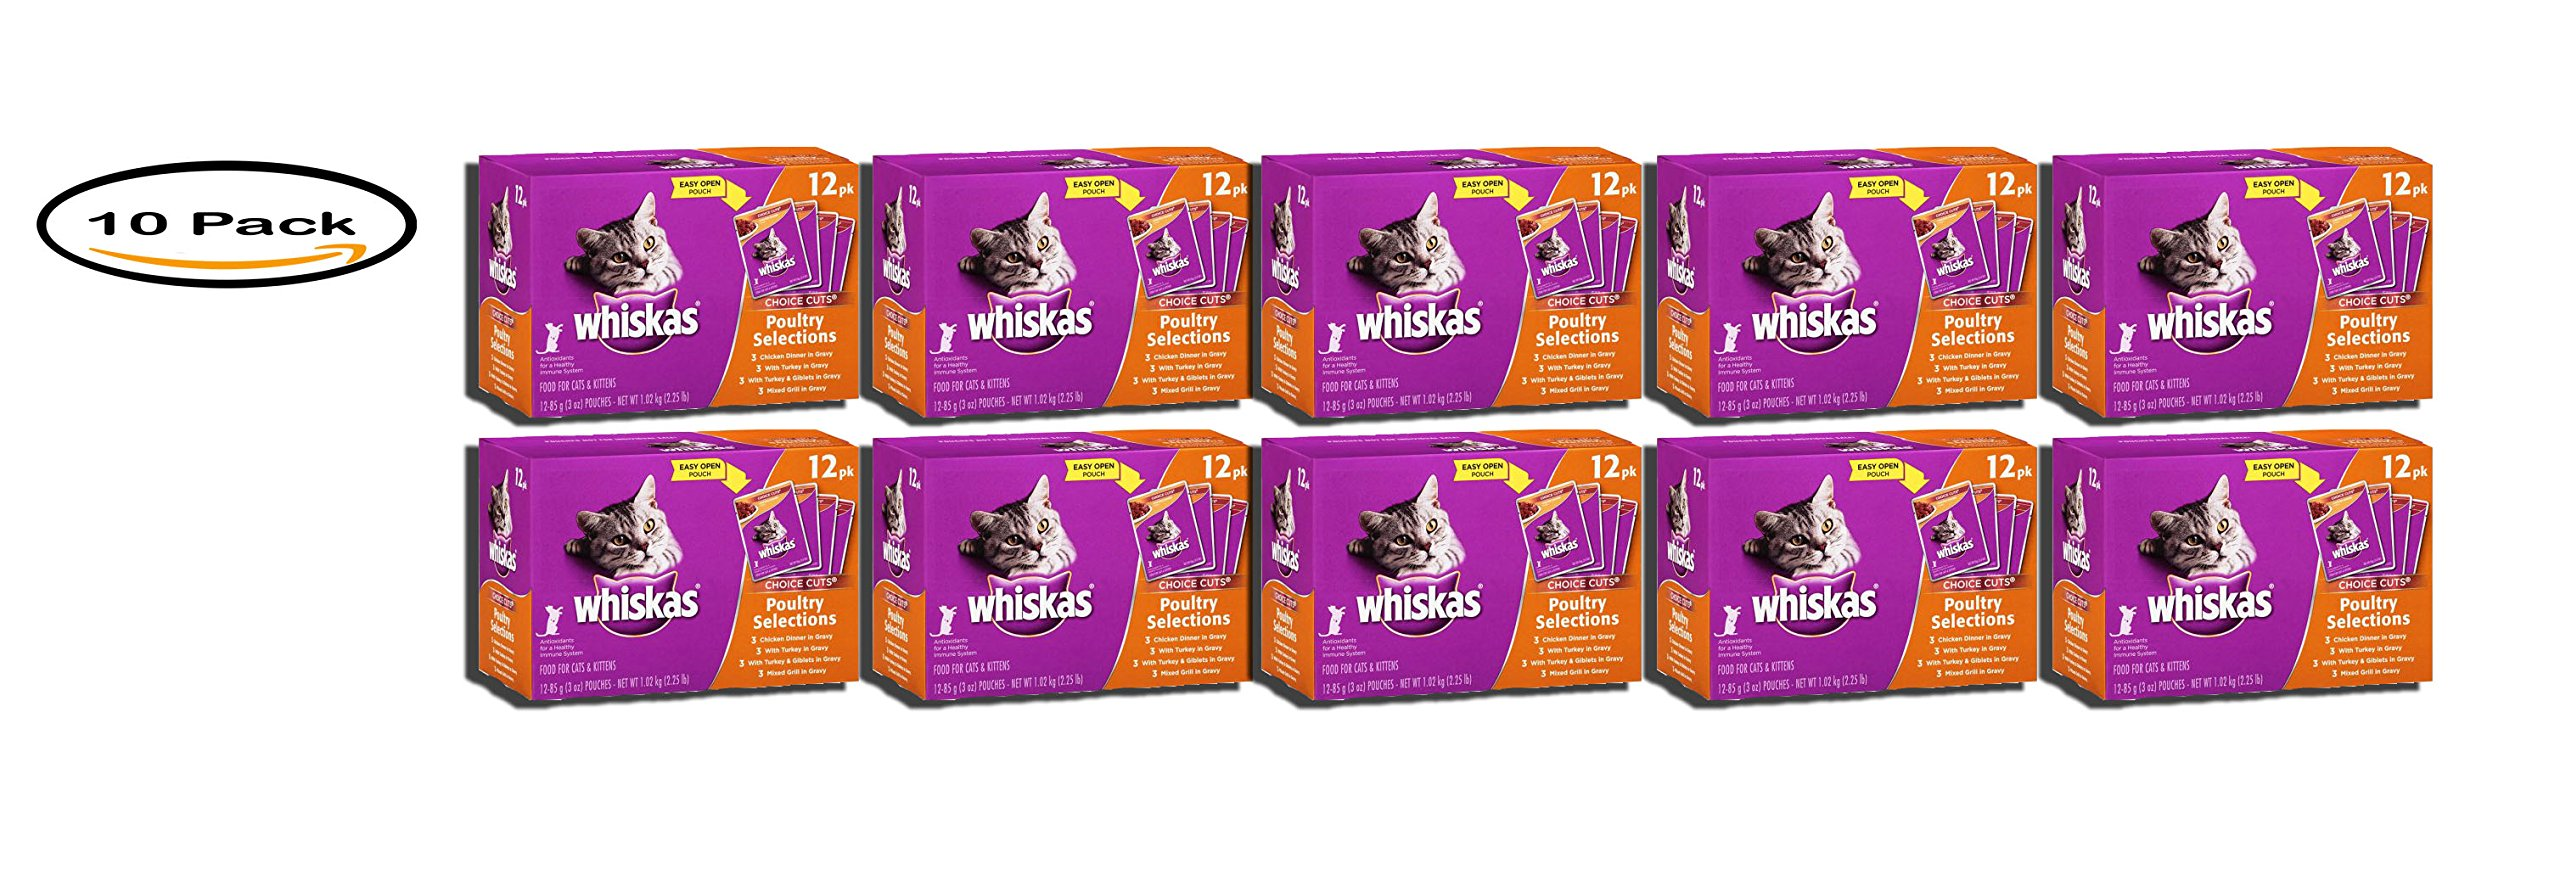 PACK OF 10 - WHISKAS CHOICE CUTS Poultry Selections Variety Pack Wet Cat Food 3 Ounces (12 Count)